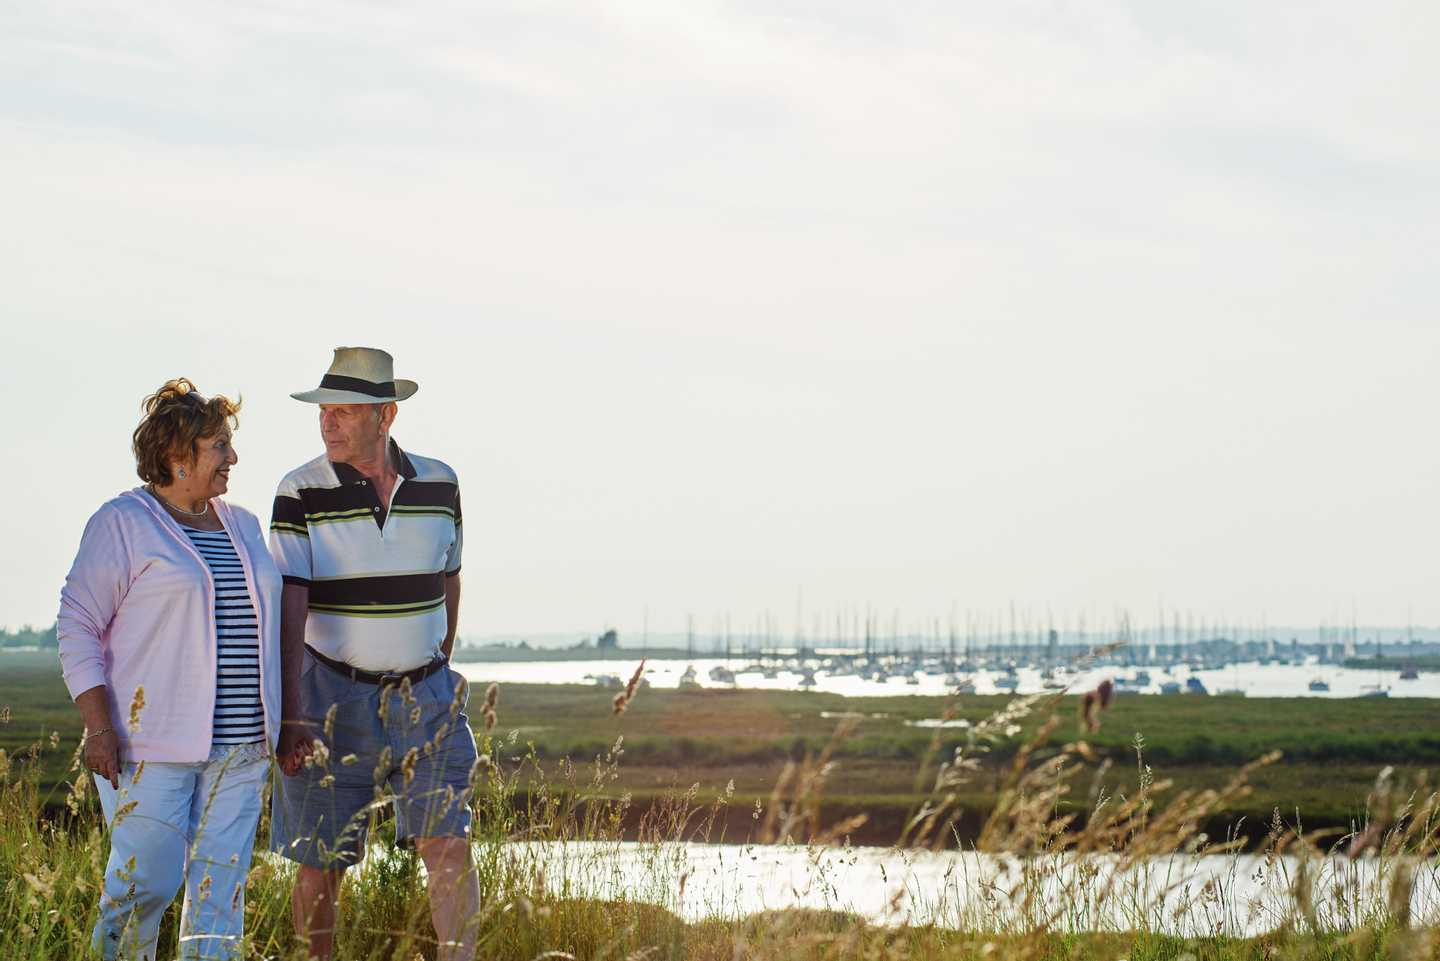 An older couple taking a walk through the marshlands near the park with boats in the background